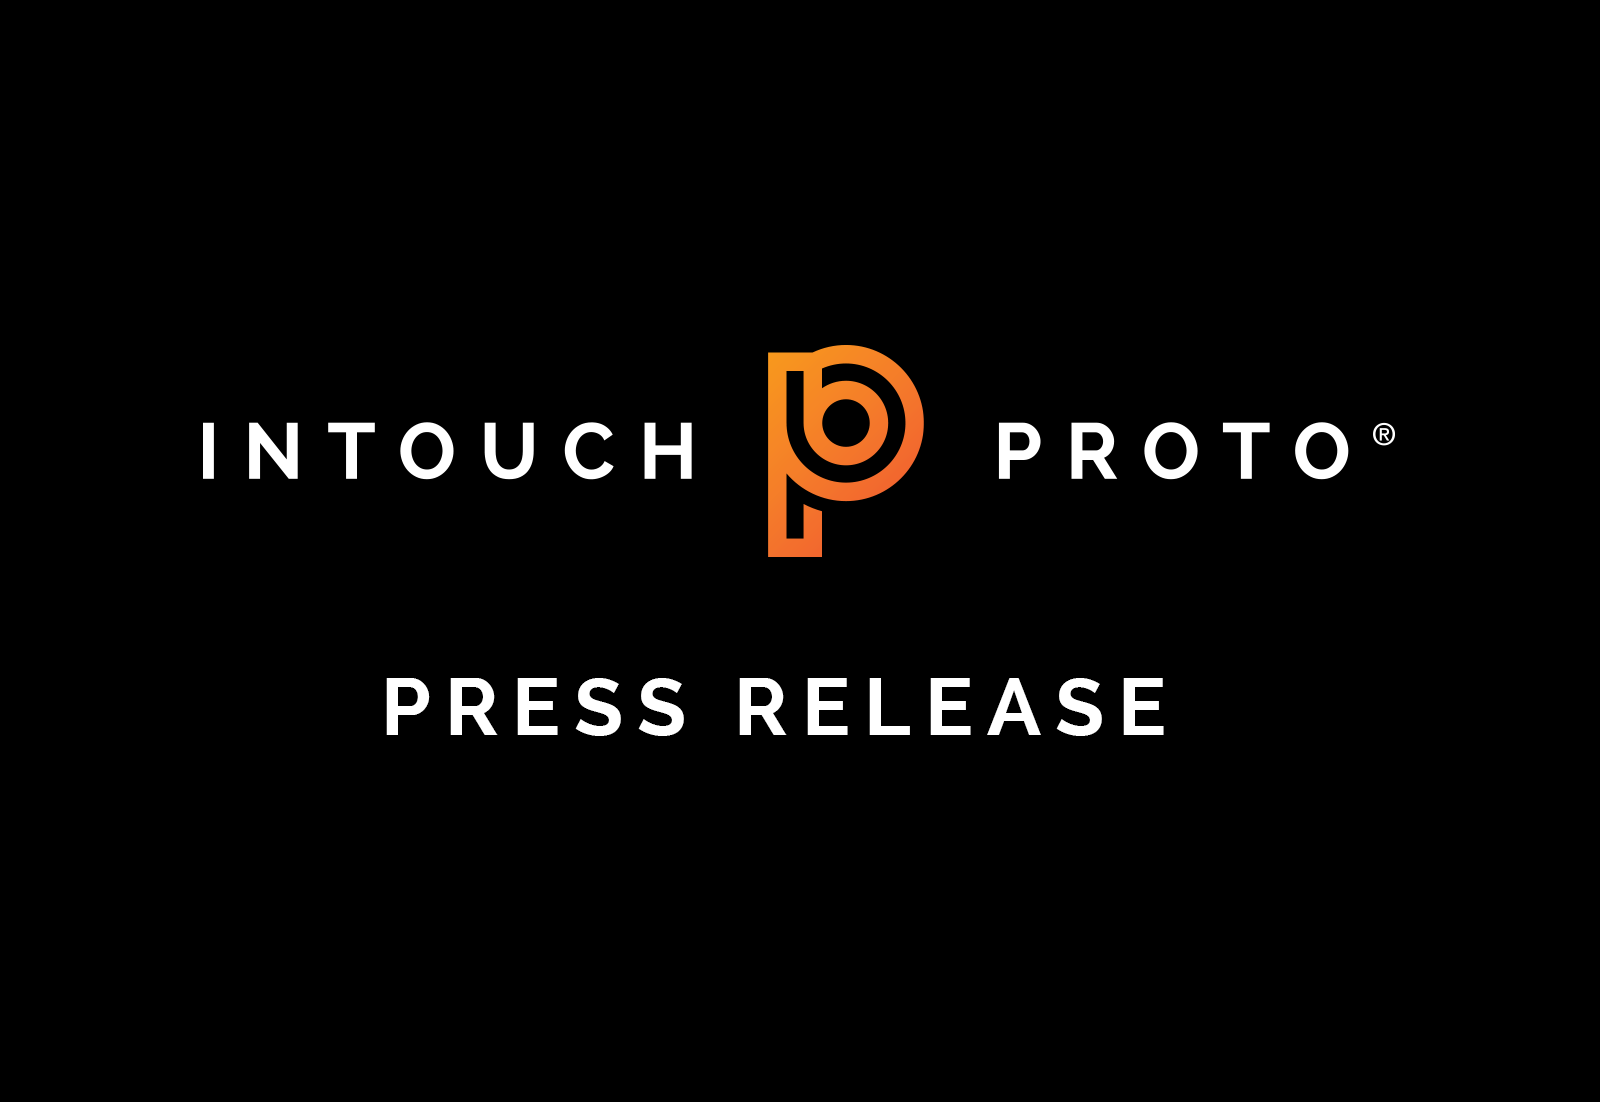 Intouch Proto is a full-service, creative healthcare marketing agency with offices in Chicago and Kansas City.